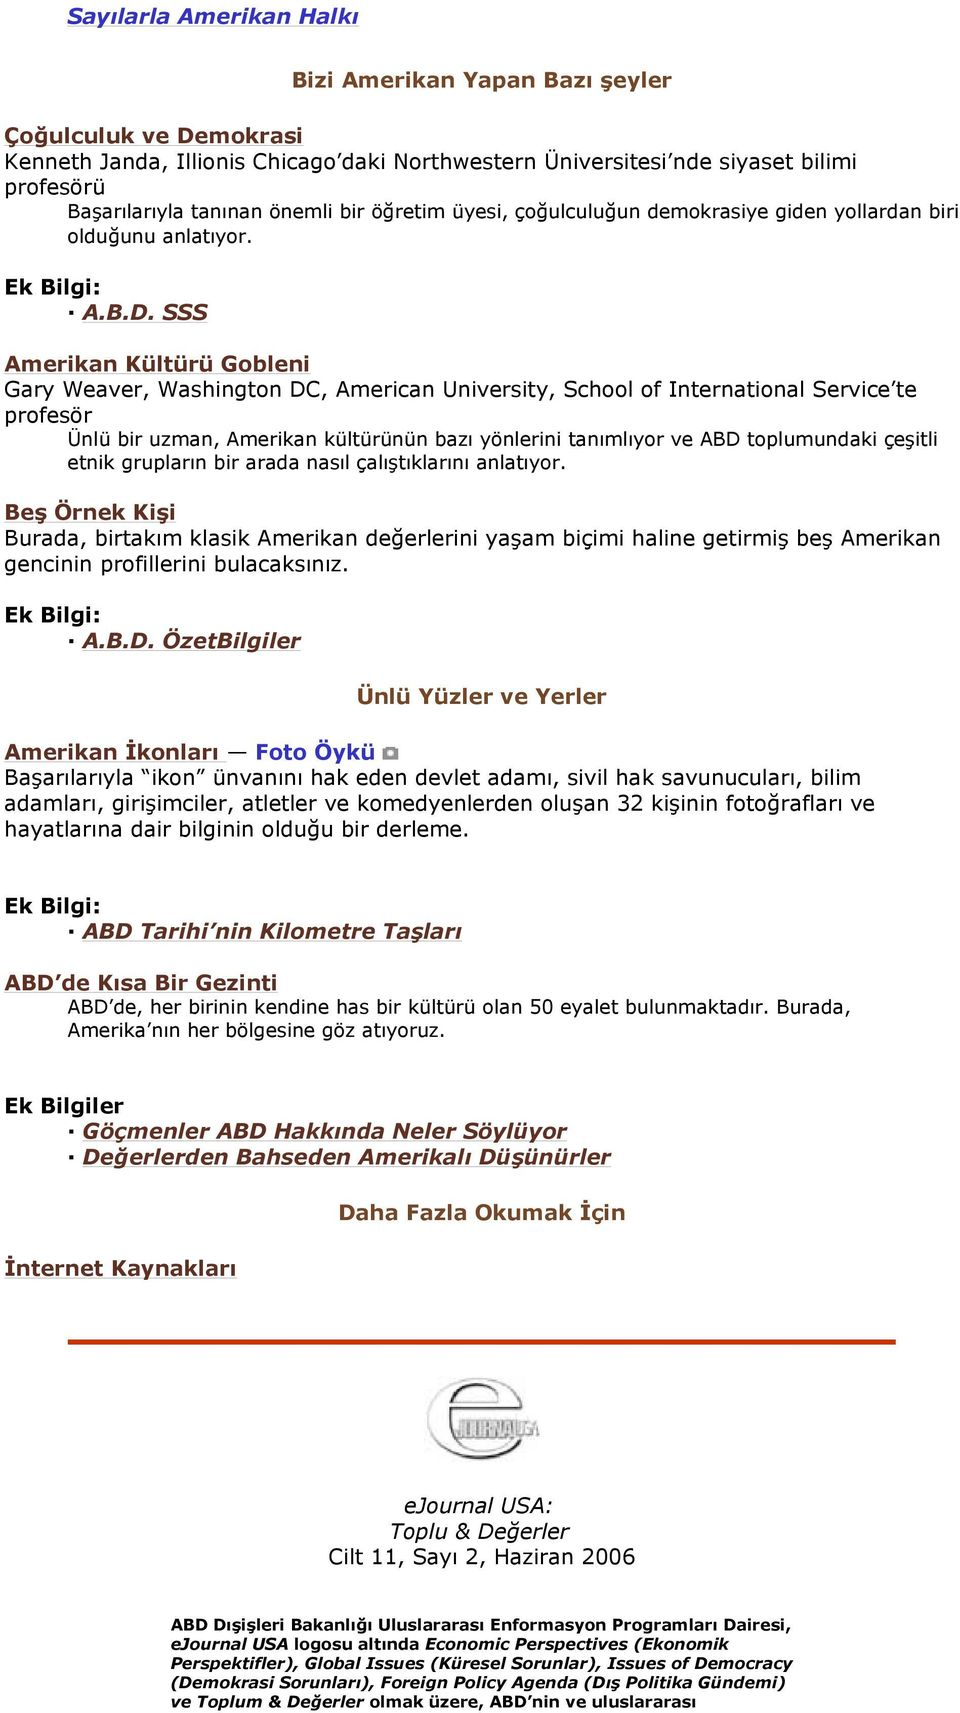 SSS Amerikan Kültürü Gobleni Gary Weaver, Washington DC, American University, School of International Service te profesör Ünlü bir uzman, Amerikan kültürünün bazı yönlerini tanımlıyor ve ABD